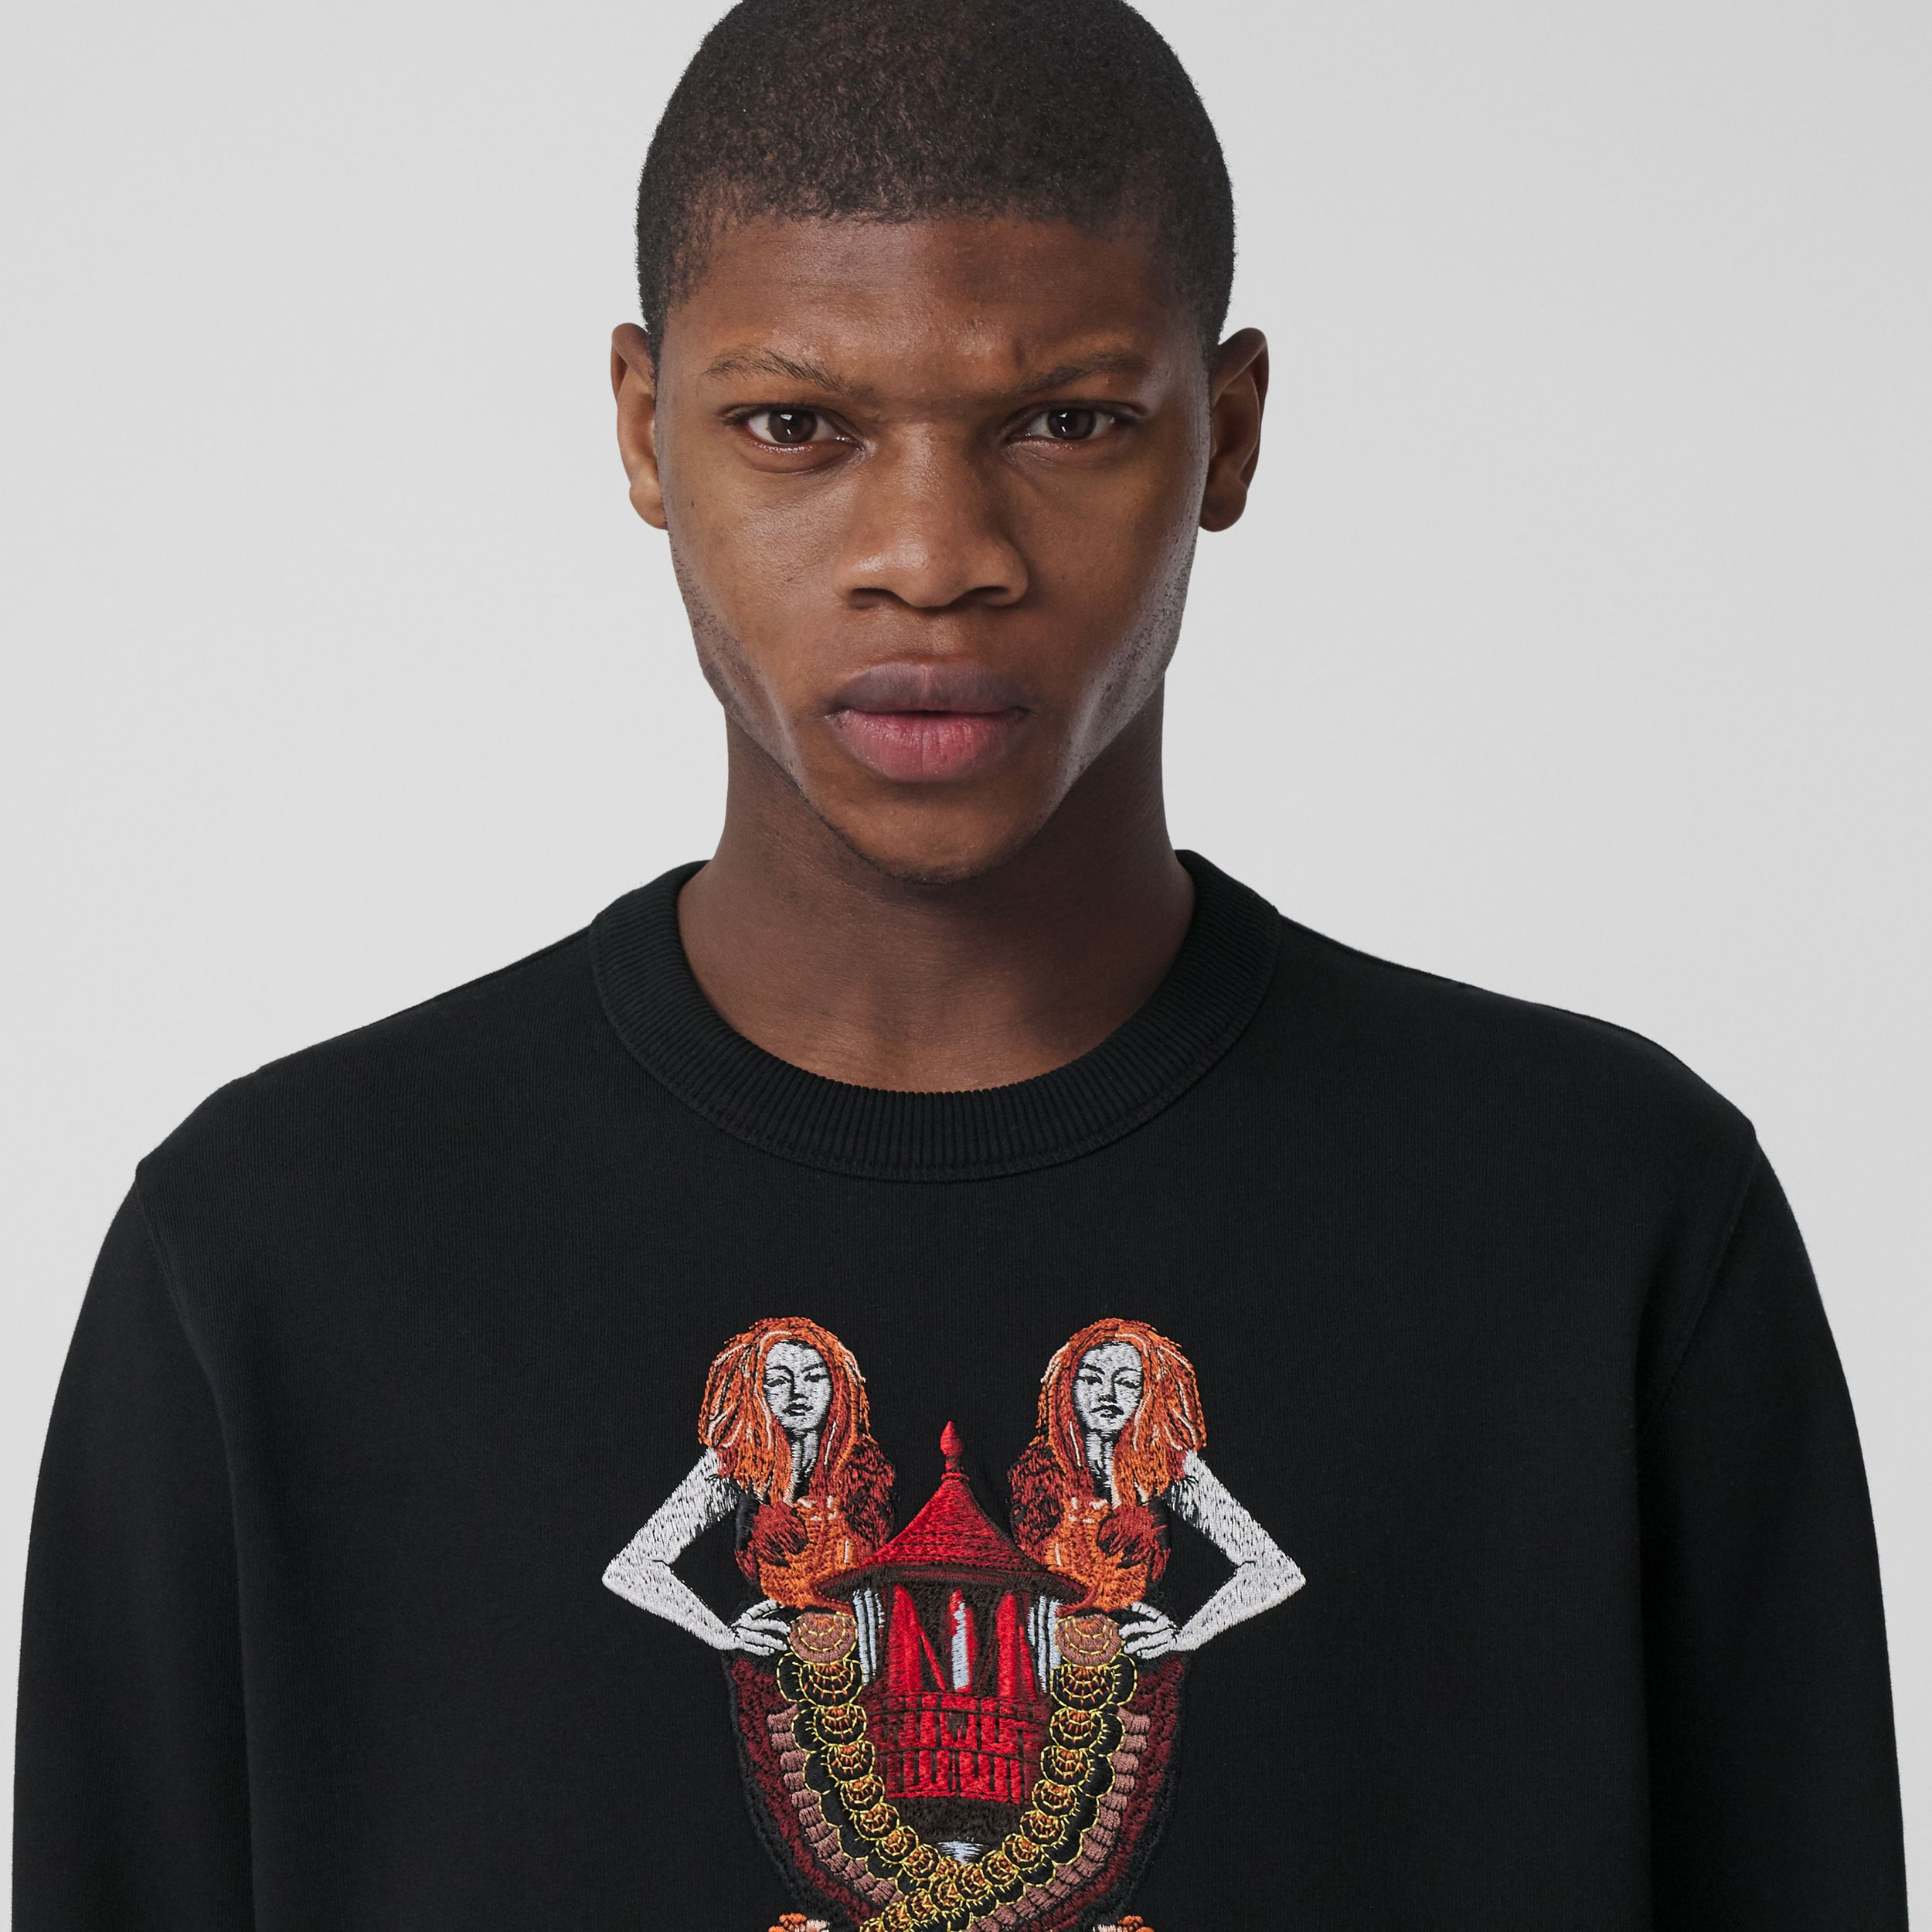 Mermaid Print Cotton Sweatshirt in Black - Men | Burberry - 2